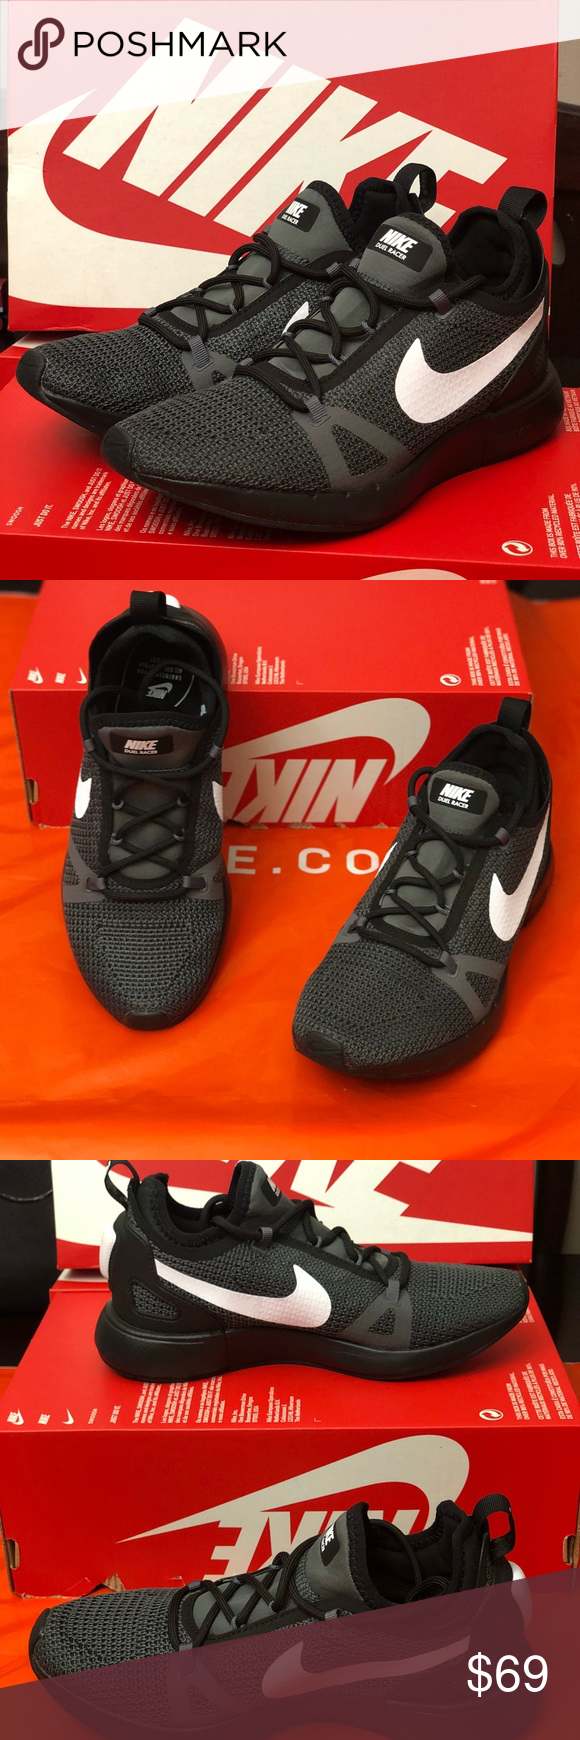 Authentic Womens Nike Duel Racer Brand new, never used Womens Nike Duel  Racer. Comes with original box without lid MSRP: $120 Color: Black/Dark Grey/White  ...